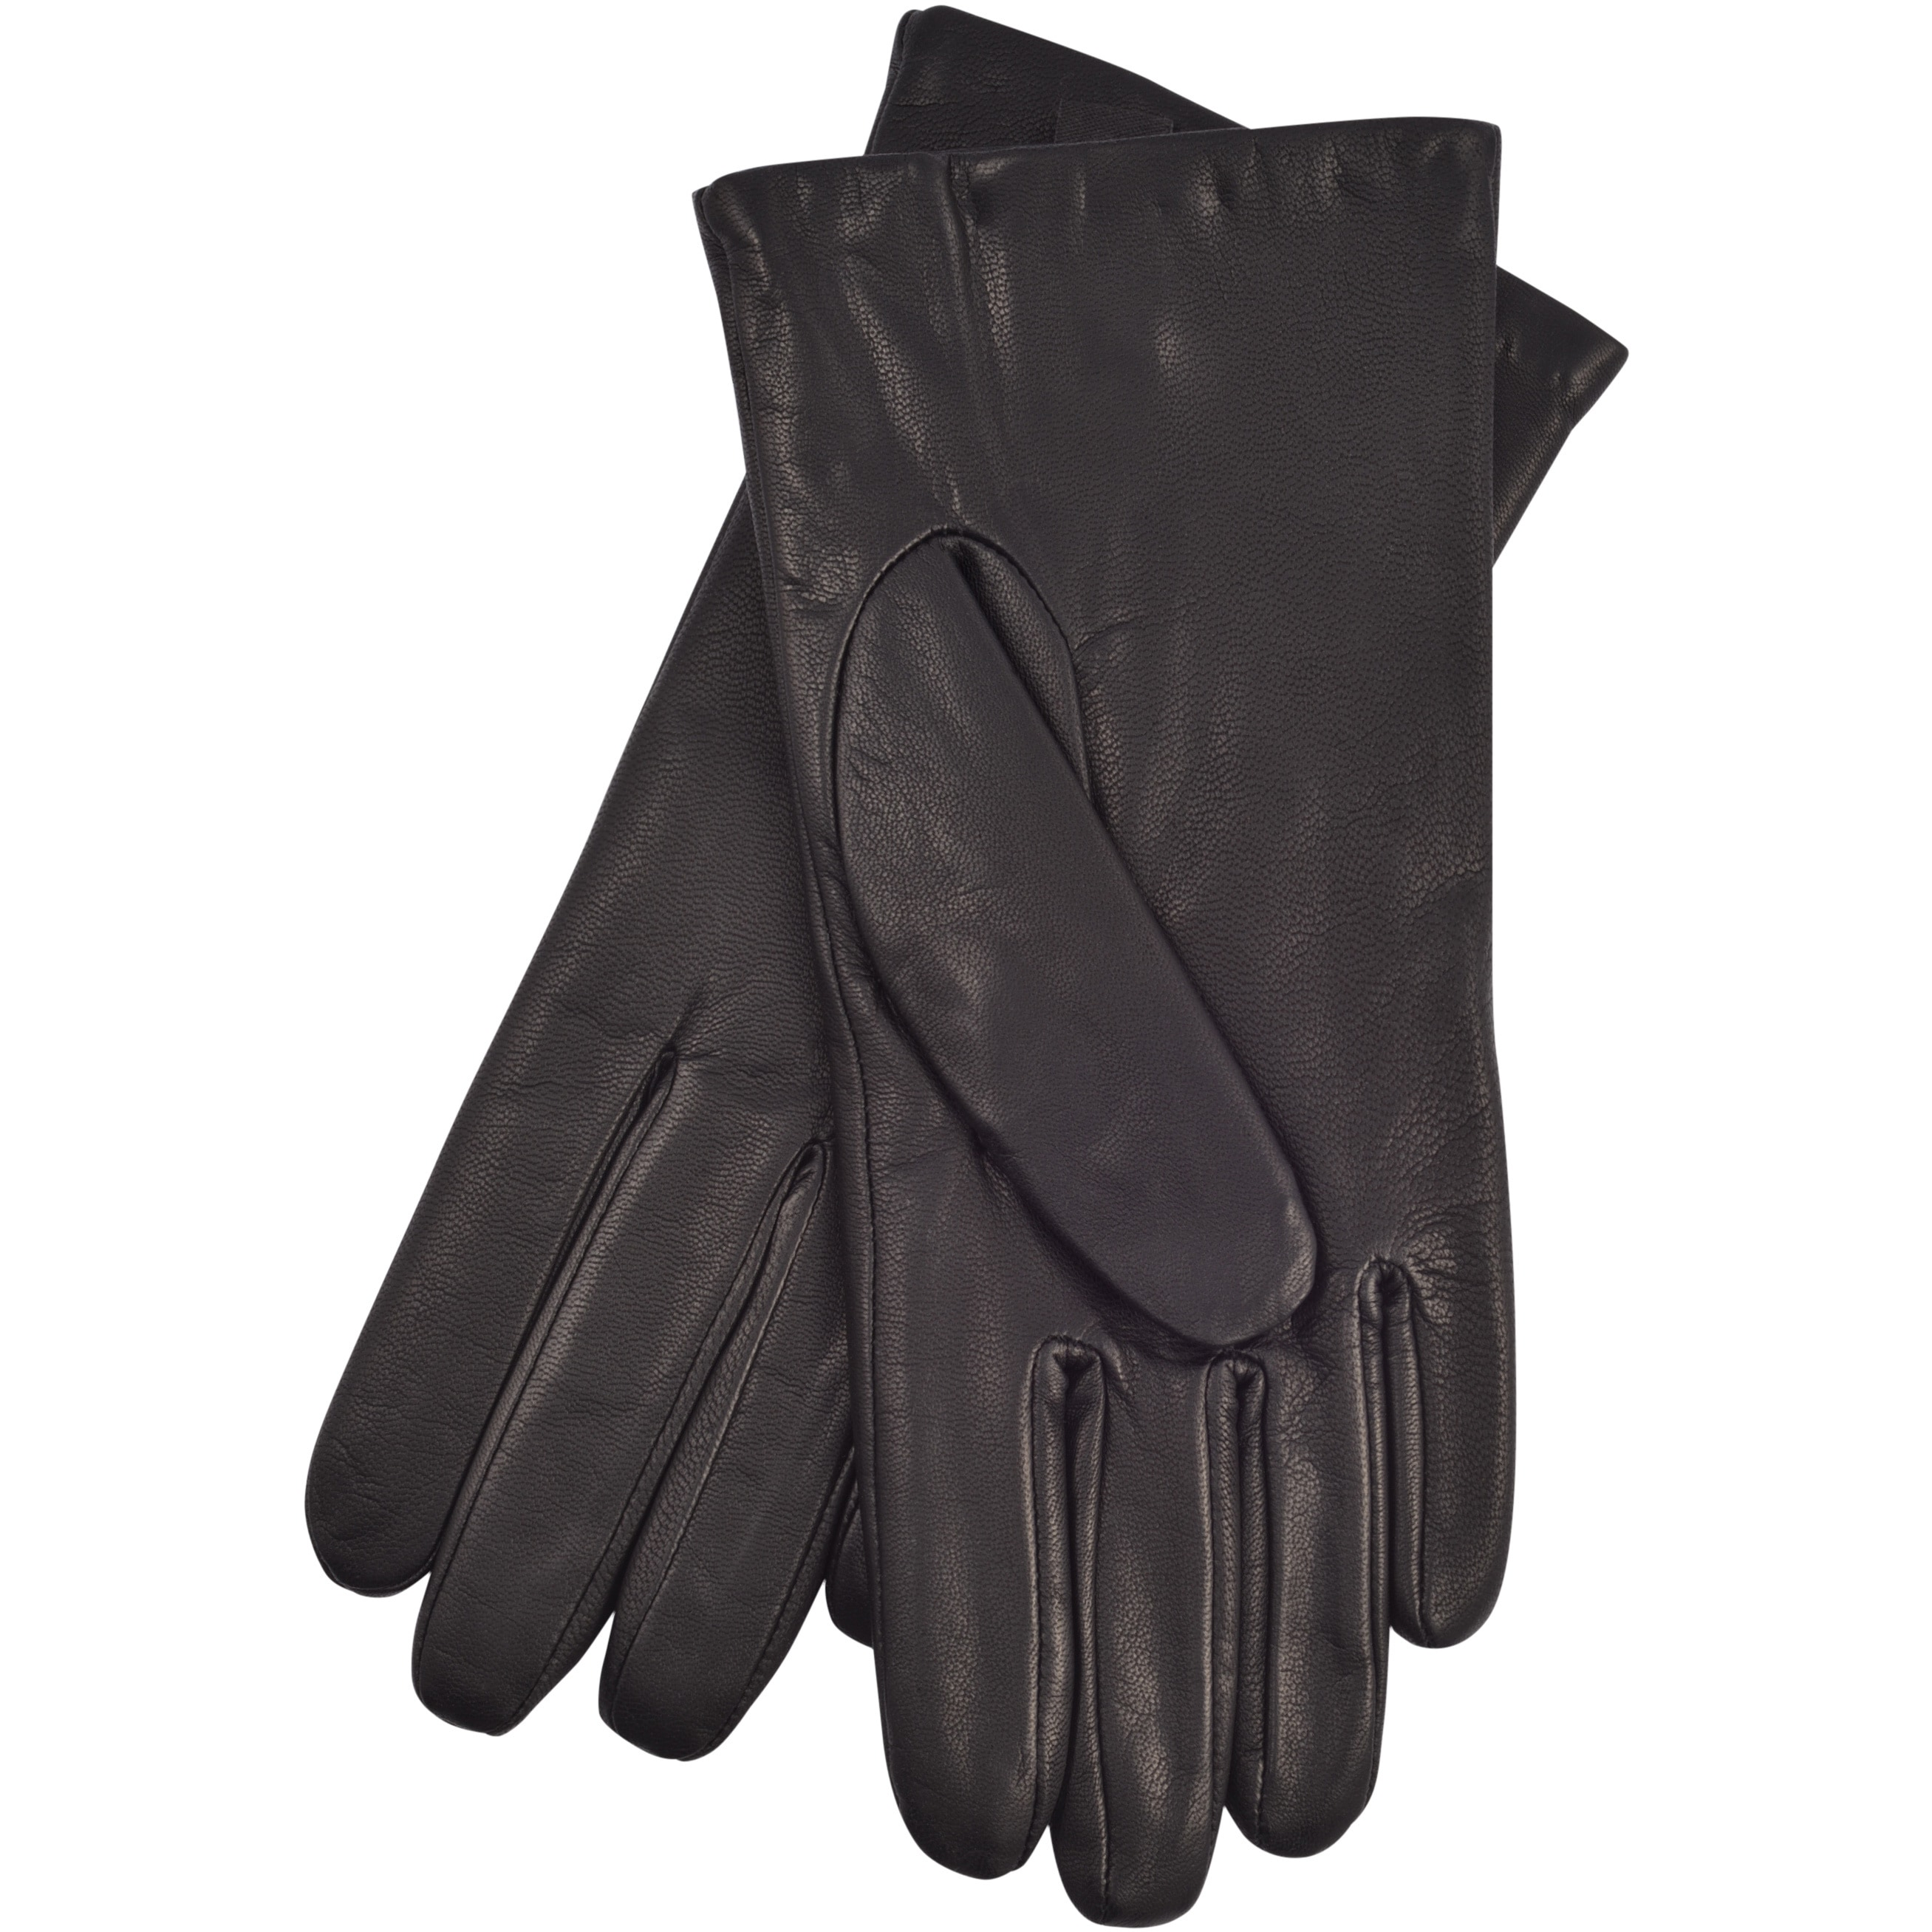 Isotoner 40170 Women/'s Leather SmarTouch Touchscreen Gloves Luggage 7.5